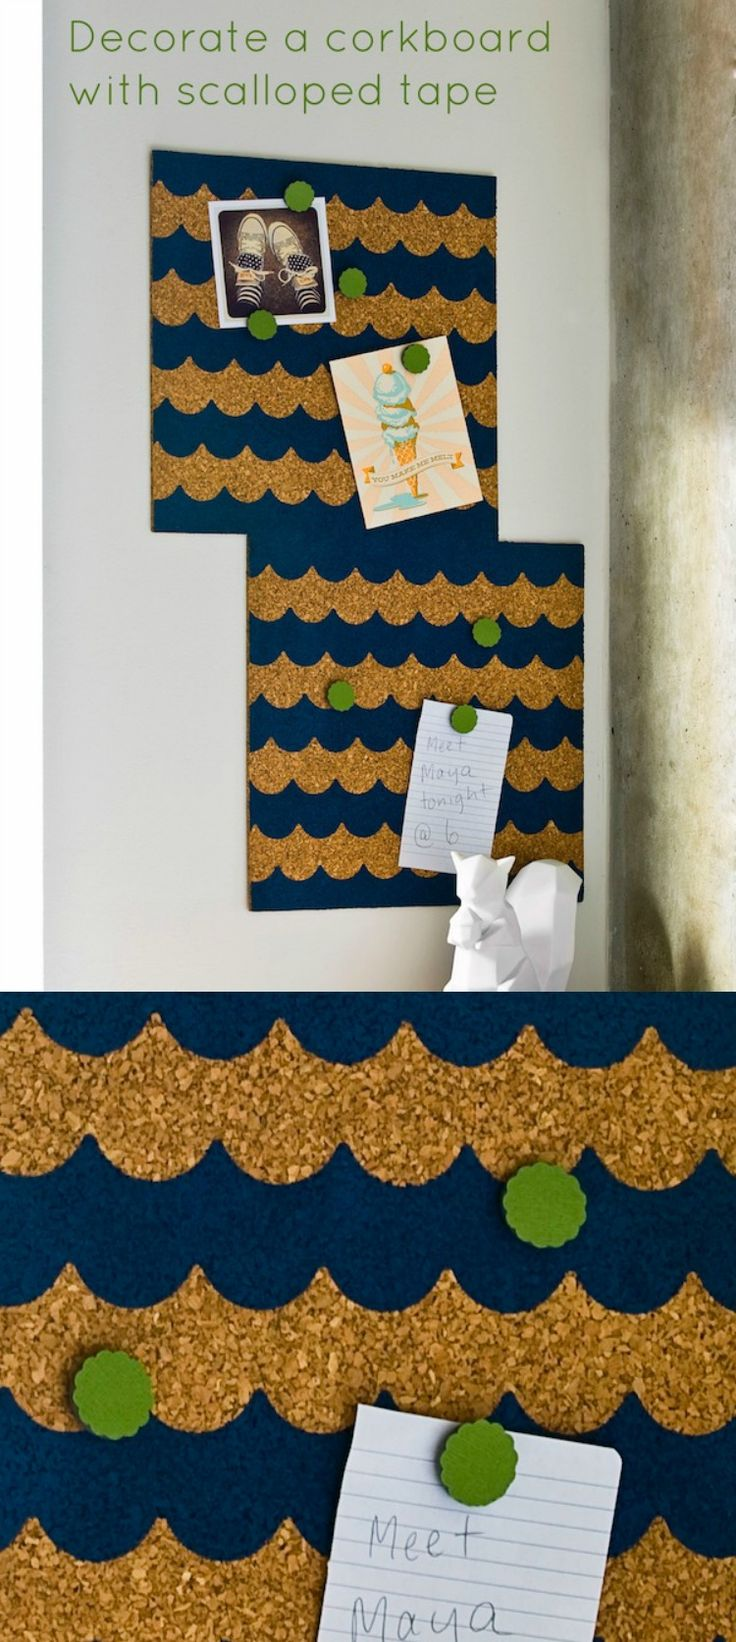 Use scalloped painter's tape to decorate a corkboard with a modern pattern! Choose your favorite paint colors and let your imagination run wild.